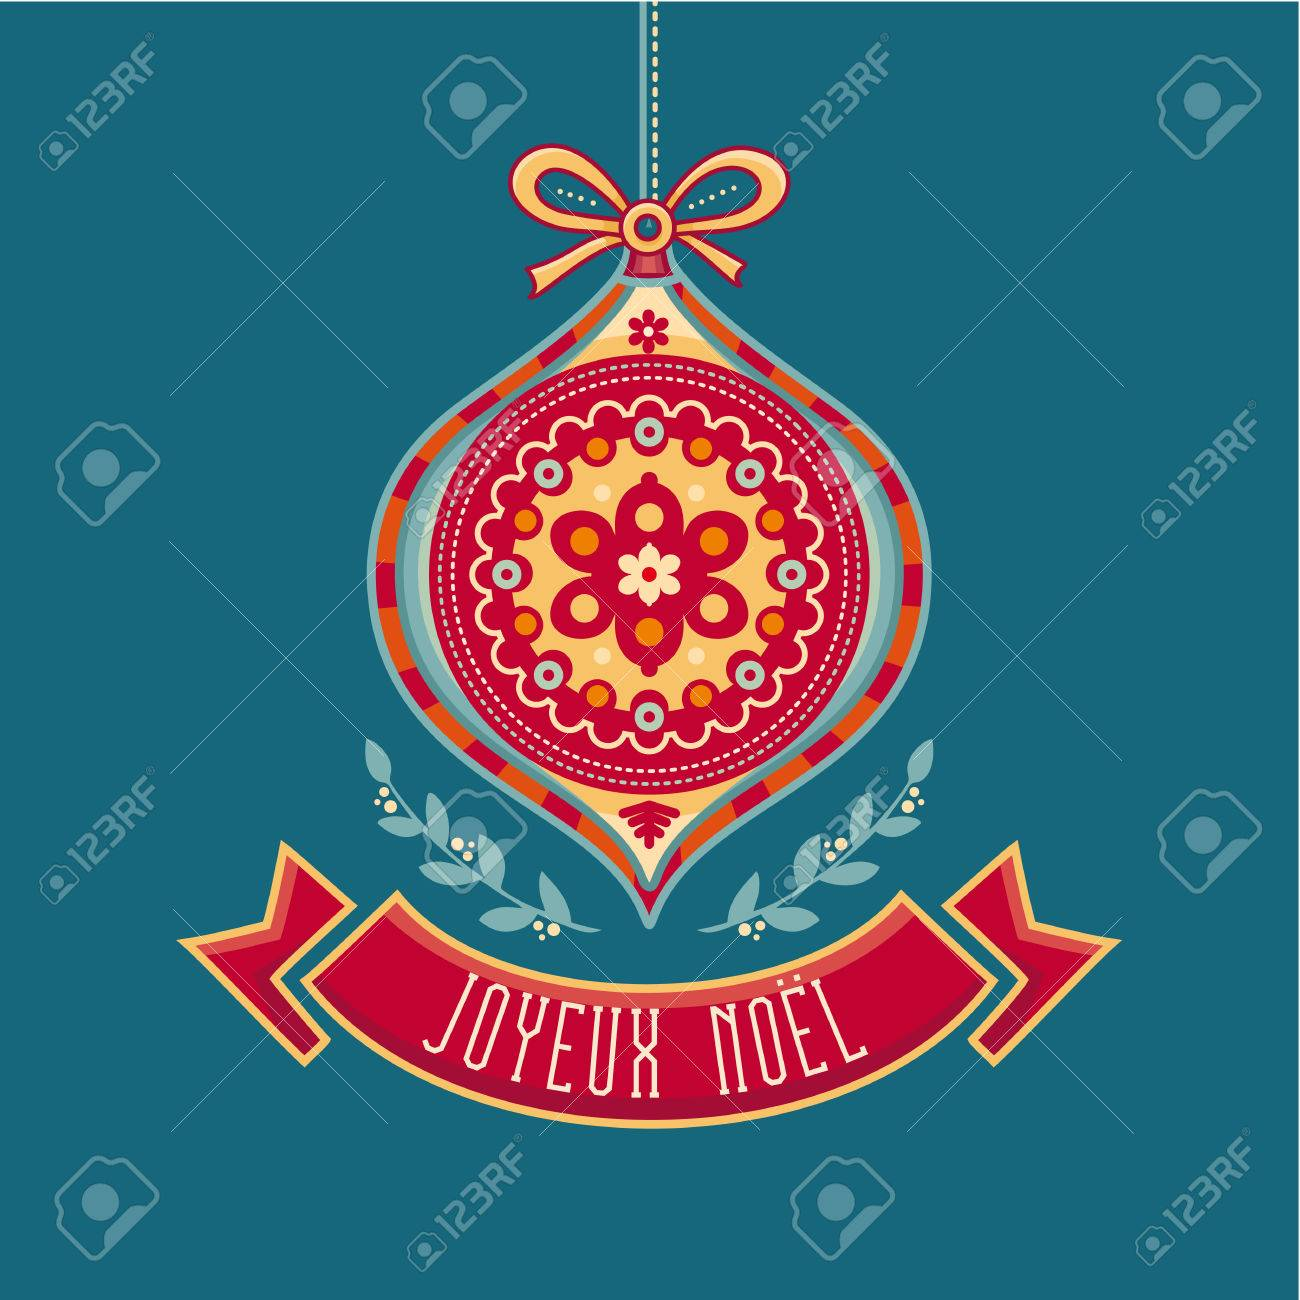 Joyeux noel happy holidays winter holiday ribbons merry joyeux noel happy holidays winter holiday ribbons merry christmas card template with m4hsunfo